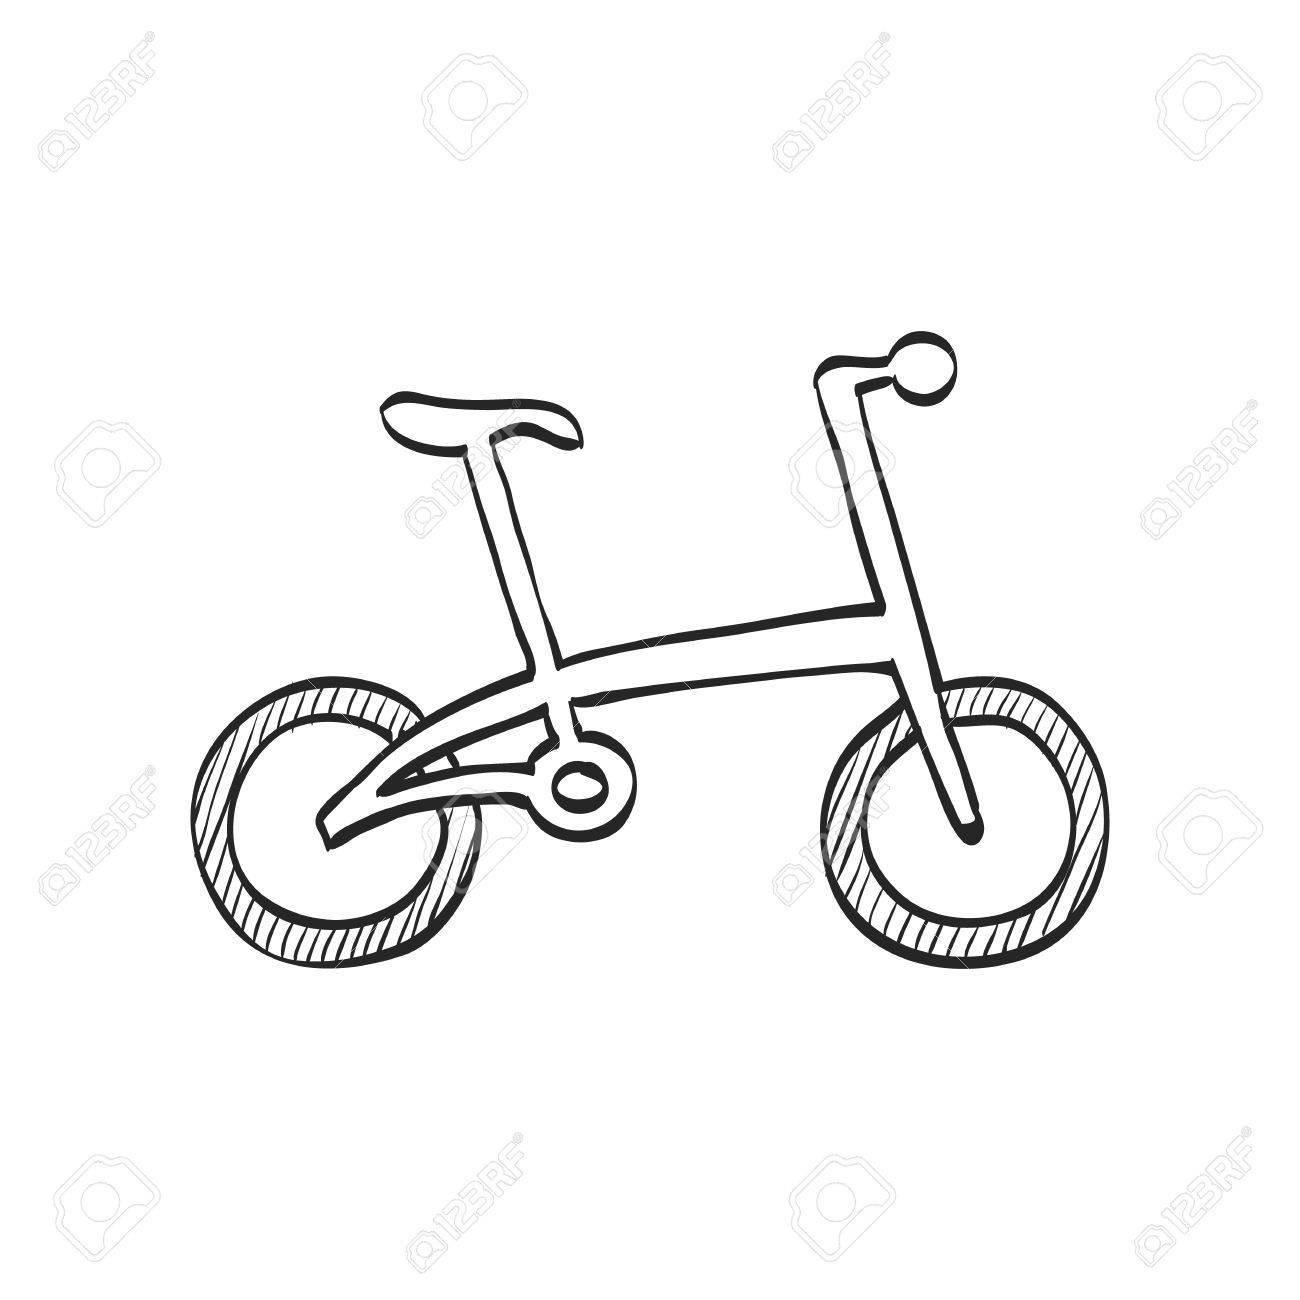 1300x1300 Bicycle Icon In Doodle Sketch Lines. Sport Cycling Road City